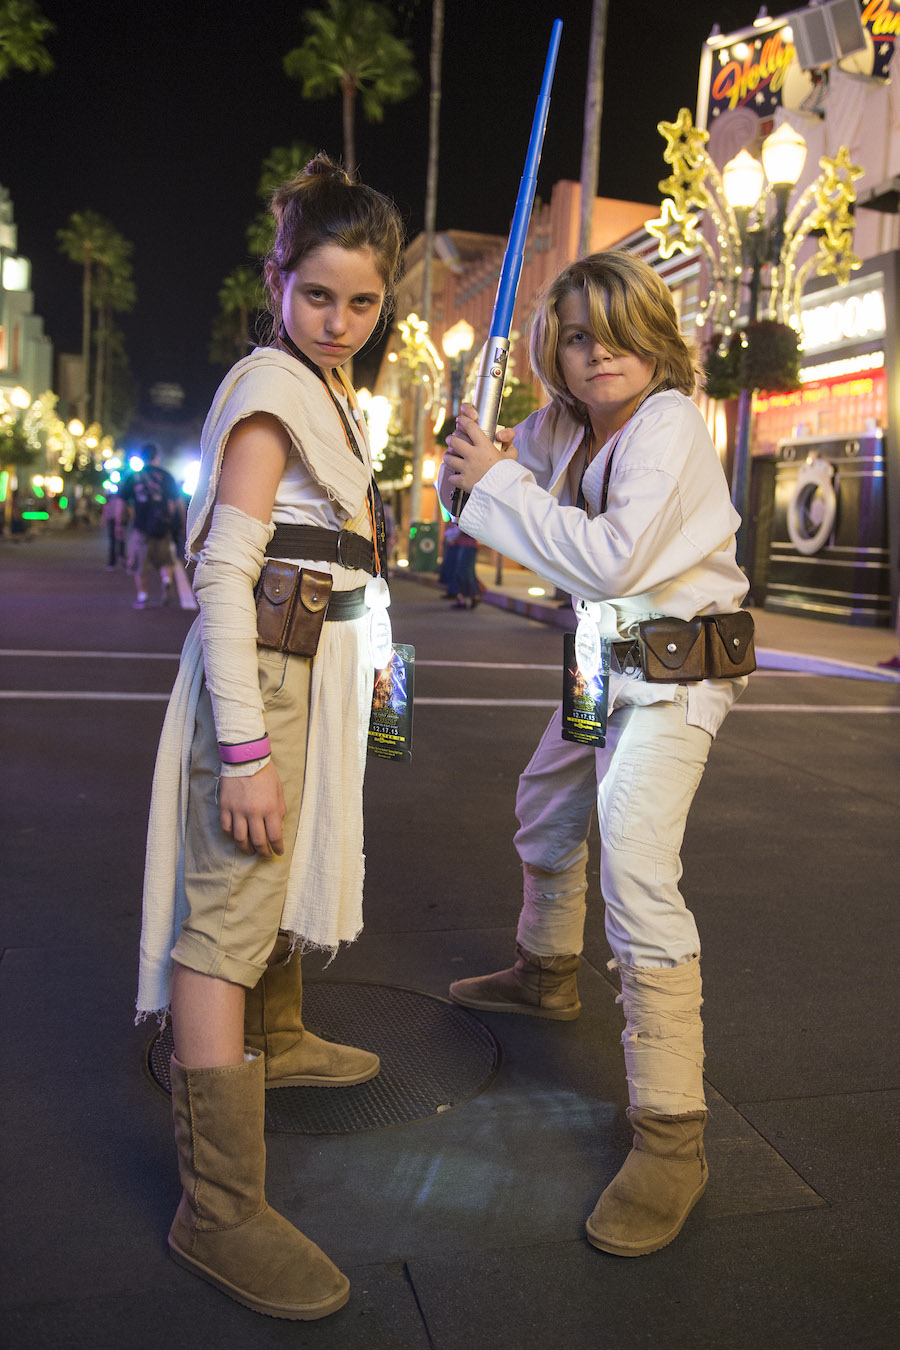 Guests Celebrate The Opening Of 'Star Wars: The Force Awakens' at Disney's Hollywood Studios